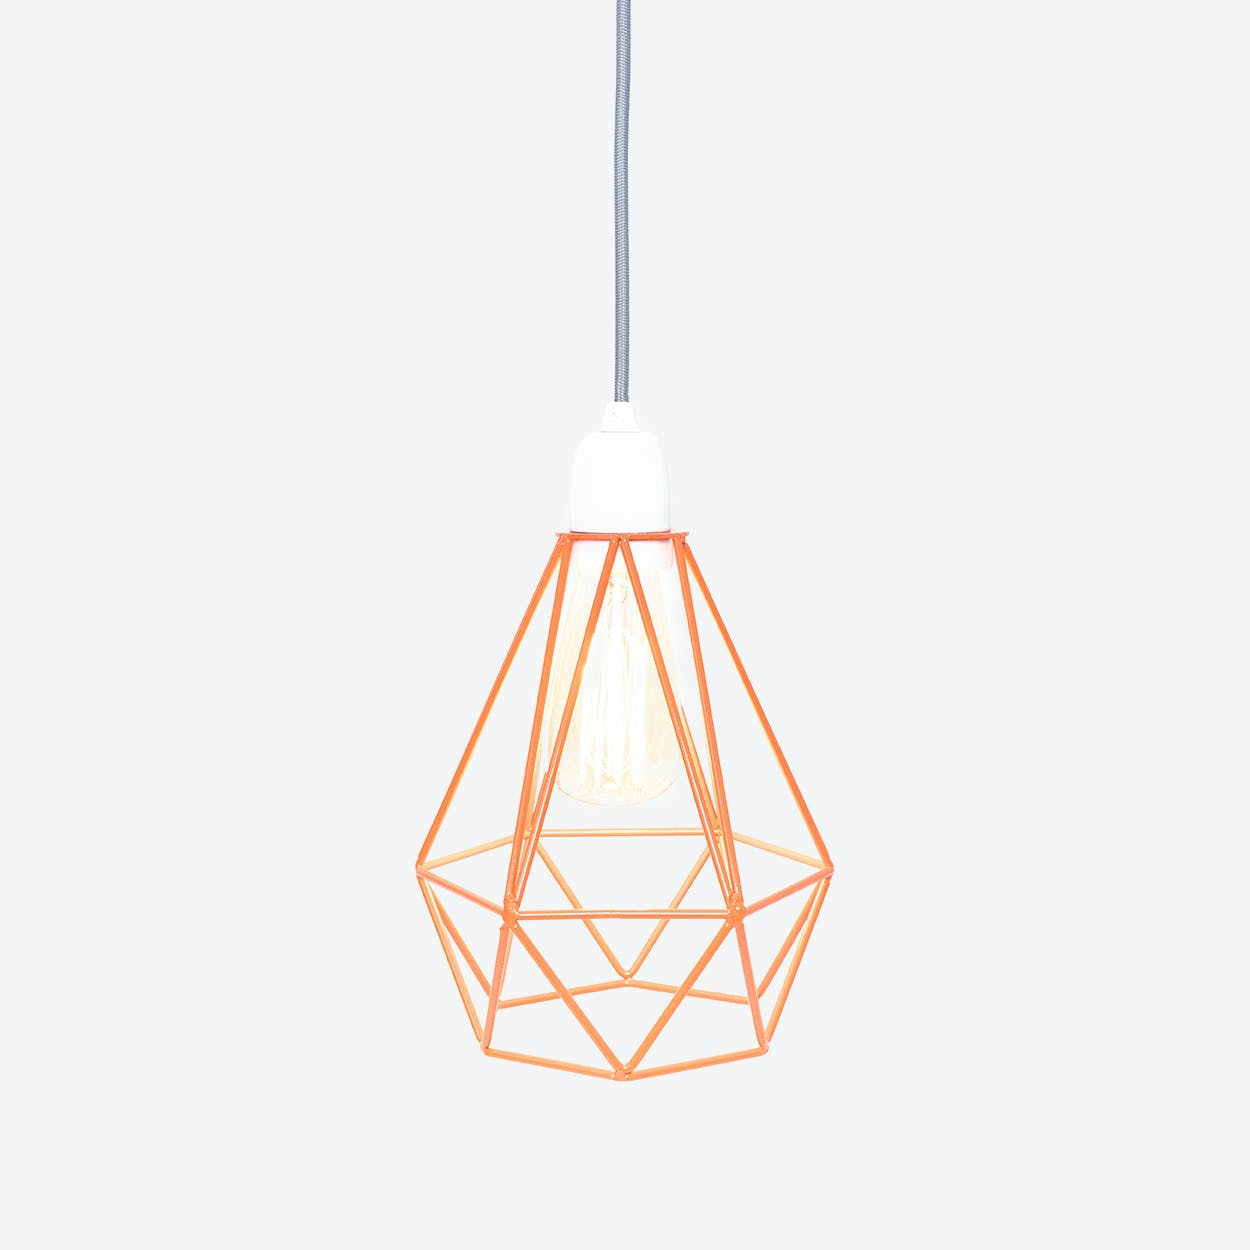 Industrial Pendant Light Diamond in Orange with Grey Cord